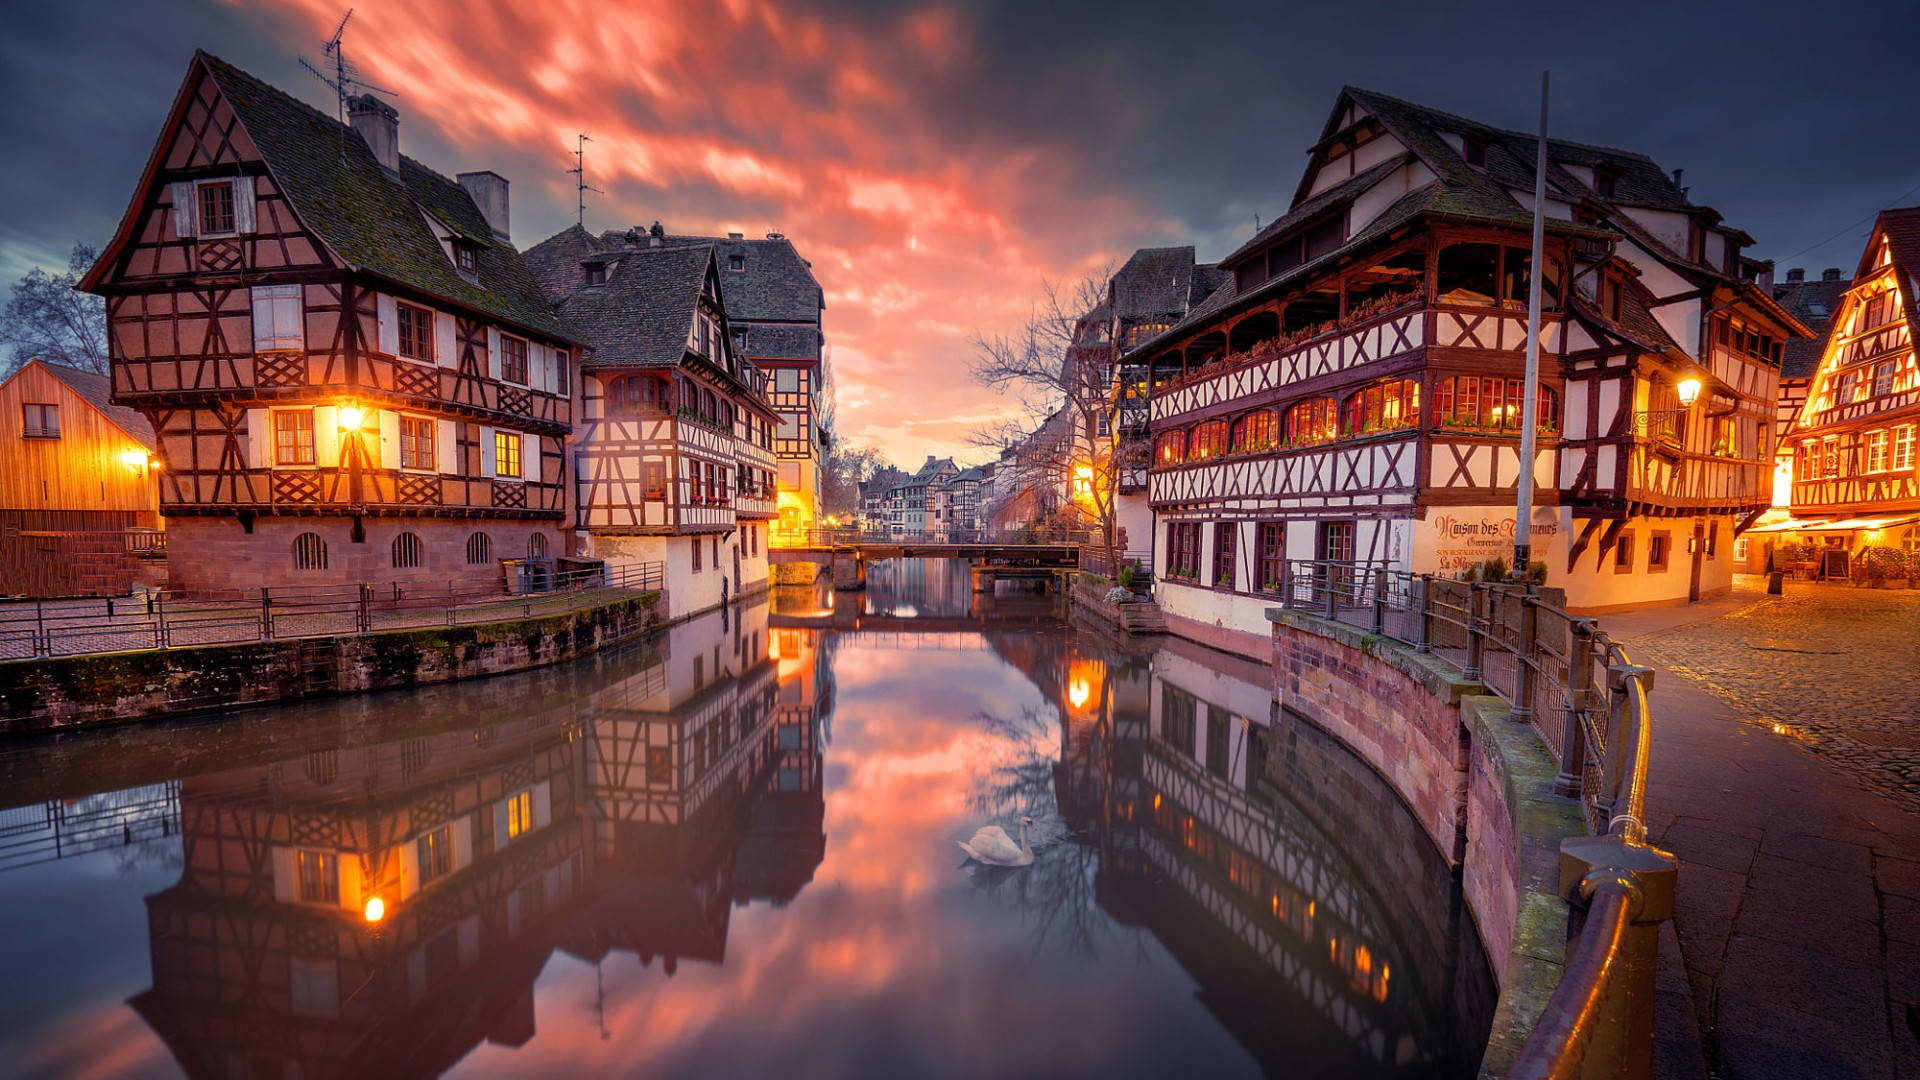 3d Hd Wallpapers For Laptop 1366x768 Architecture Building City Cityscape Strasbourg